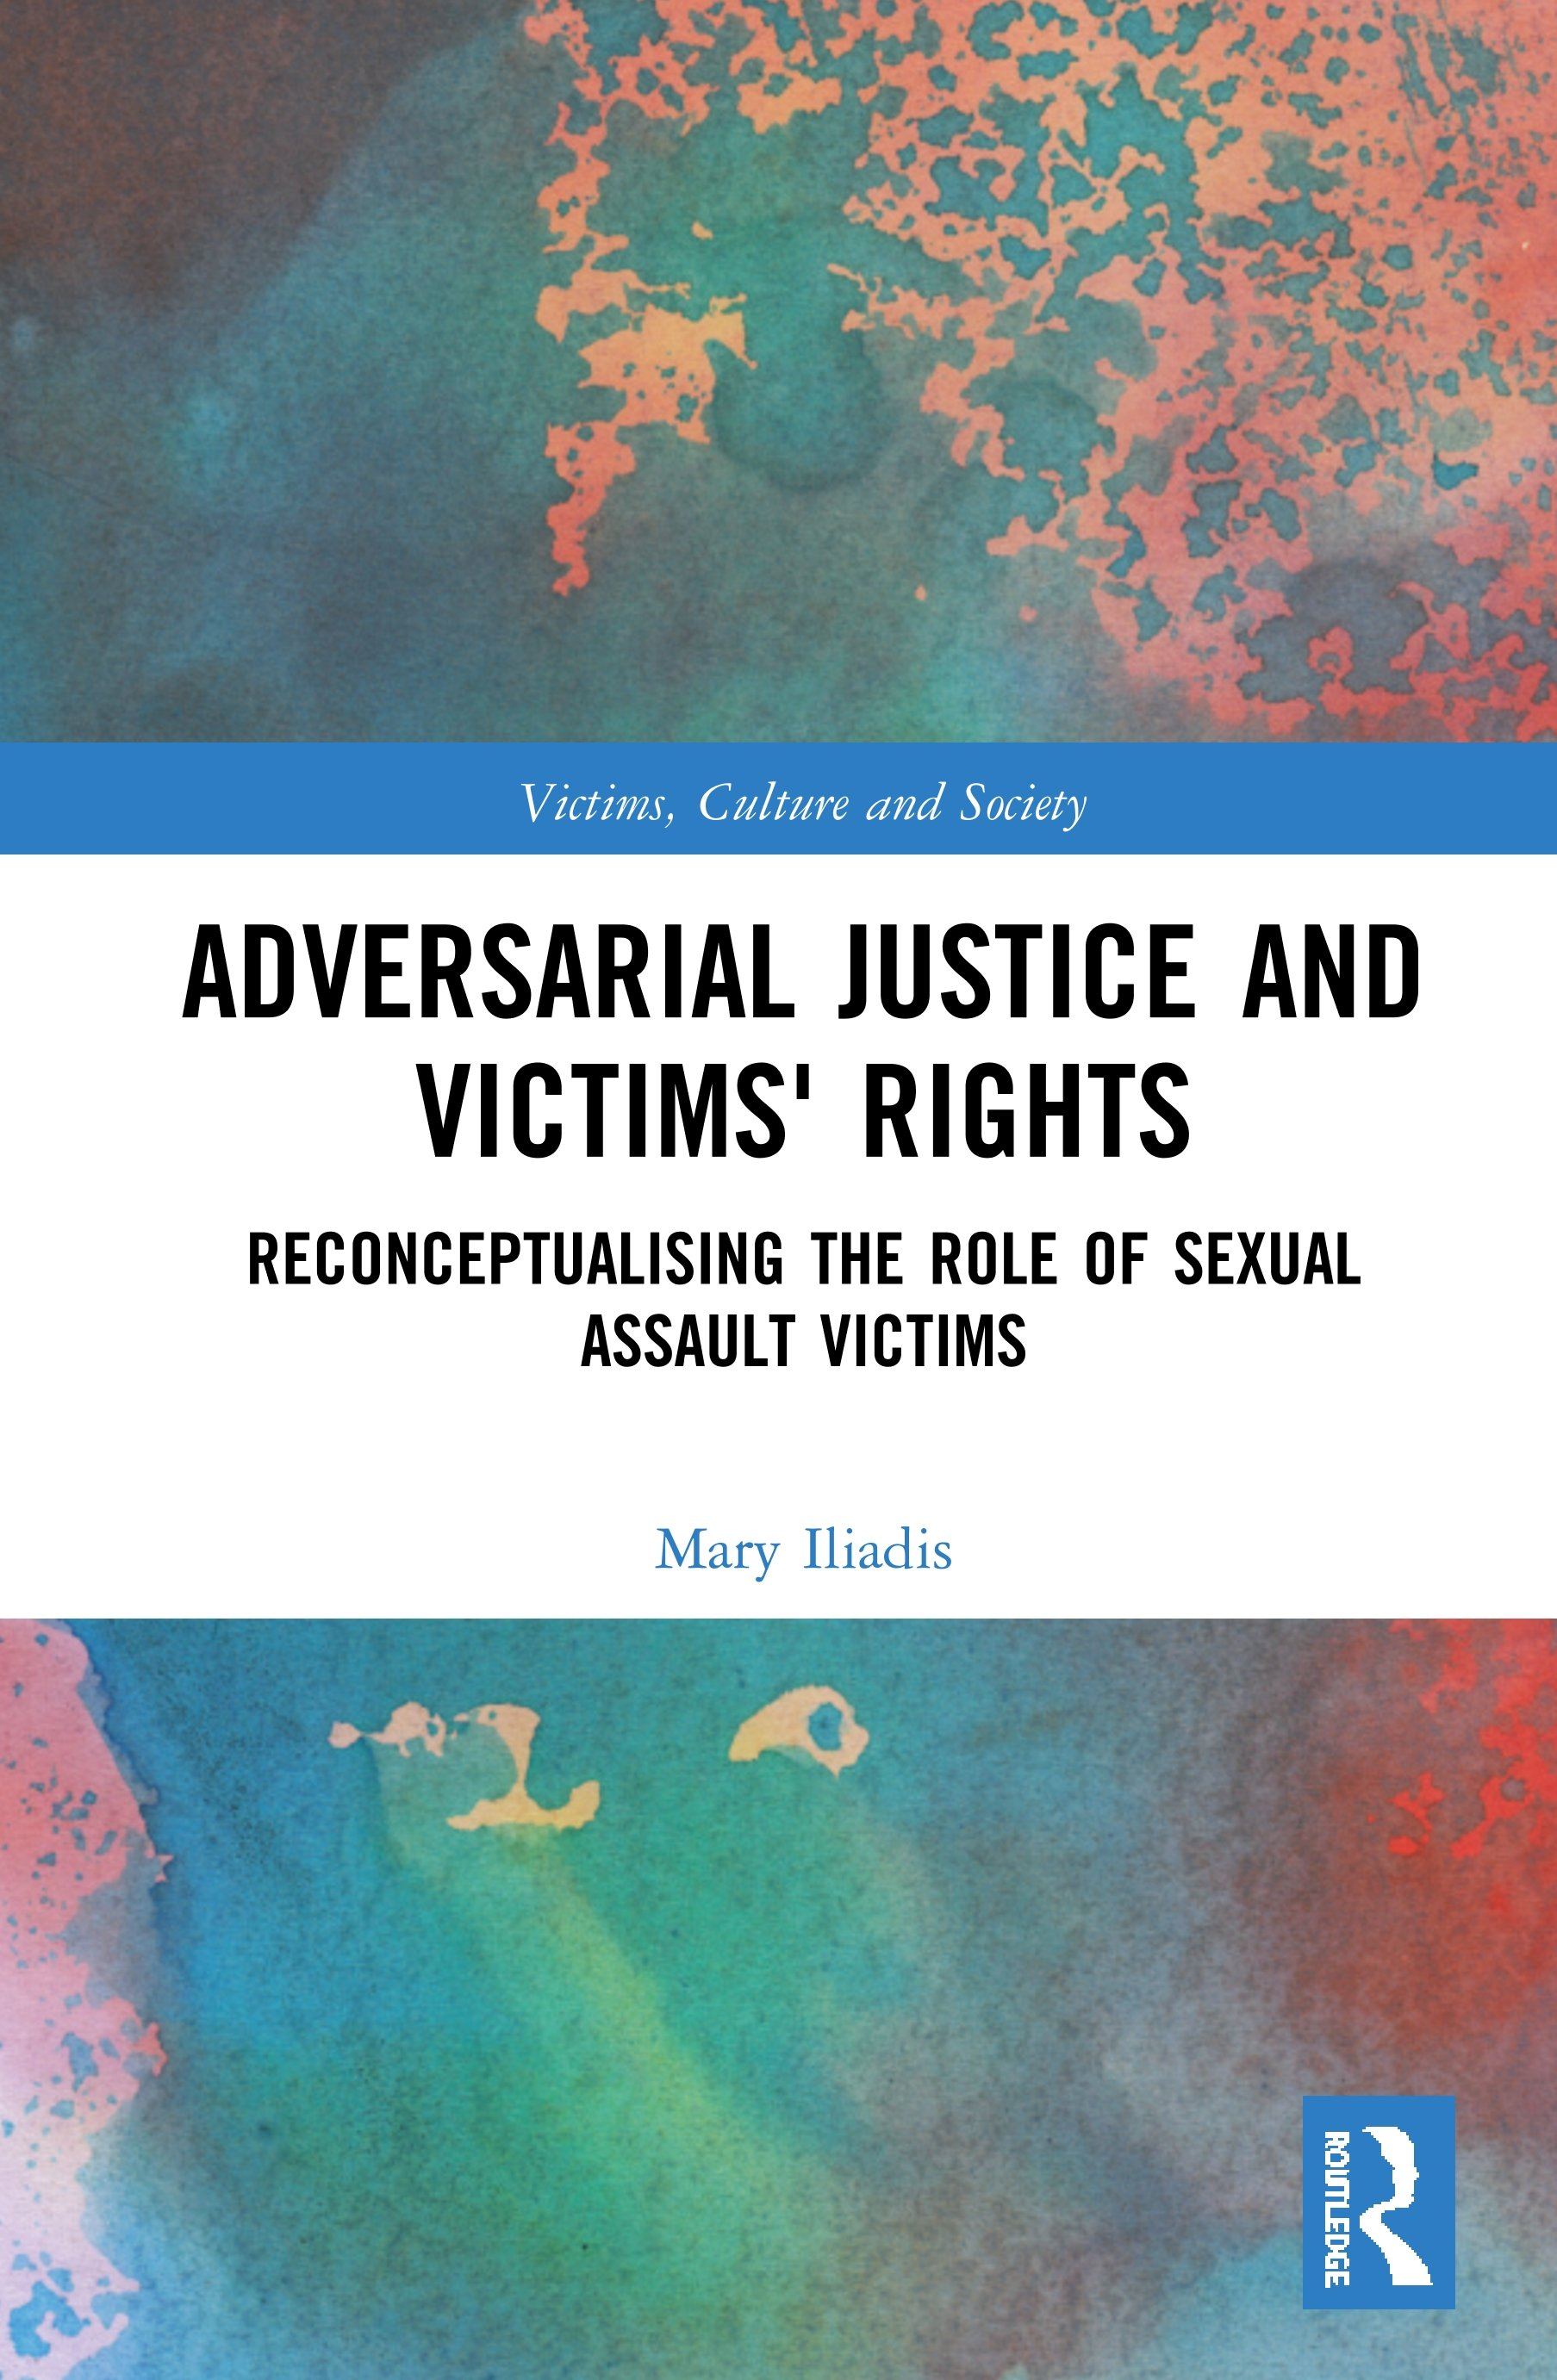 Adversarial Justice and Victims' Rights: Reconceptualising the Role of Sexual Assault Victims book cover